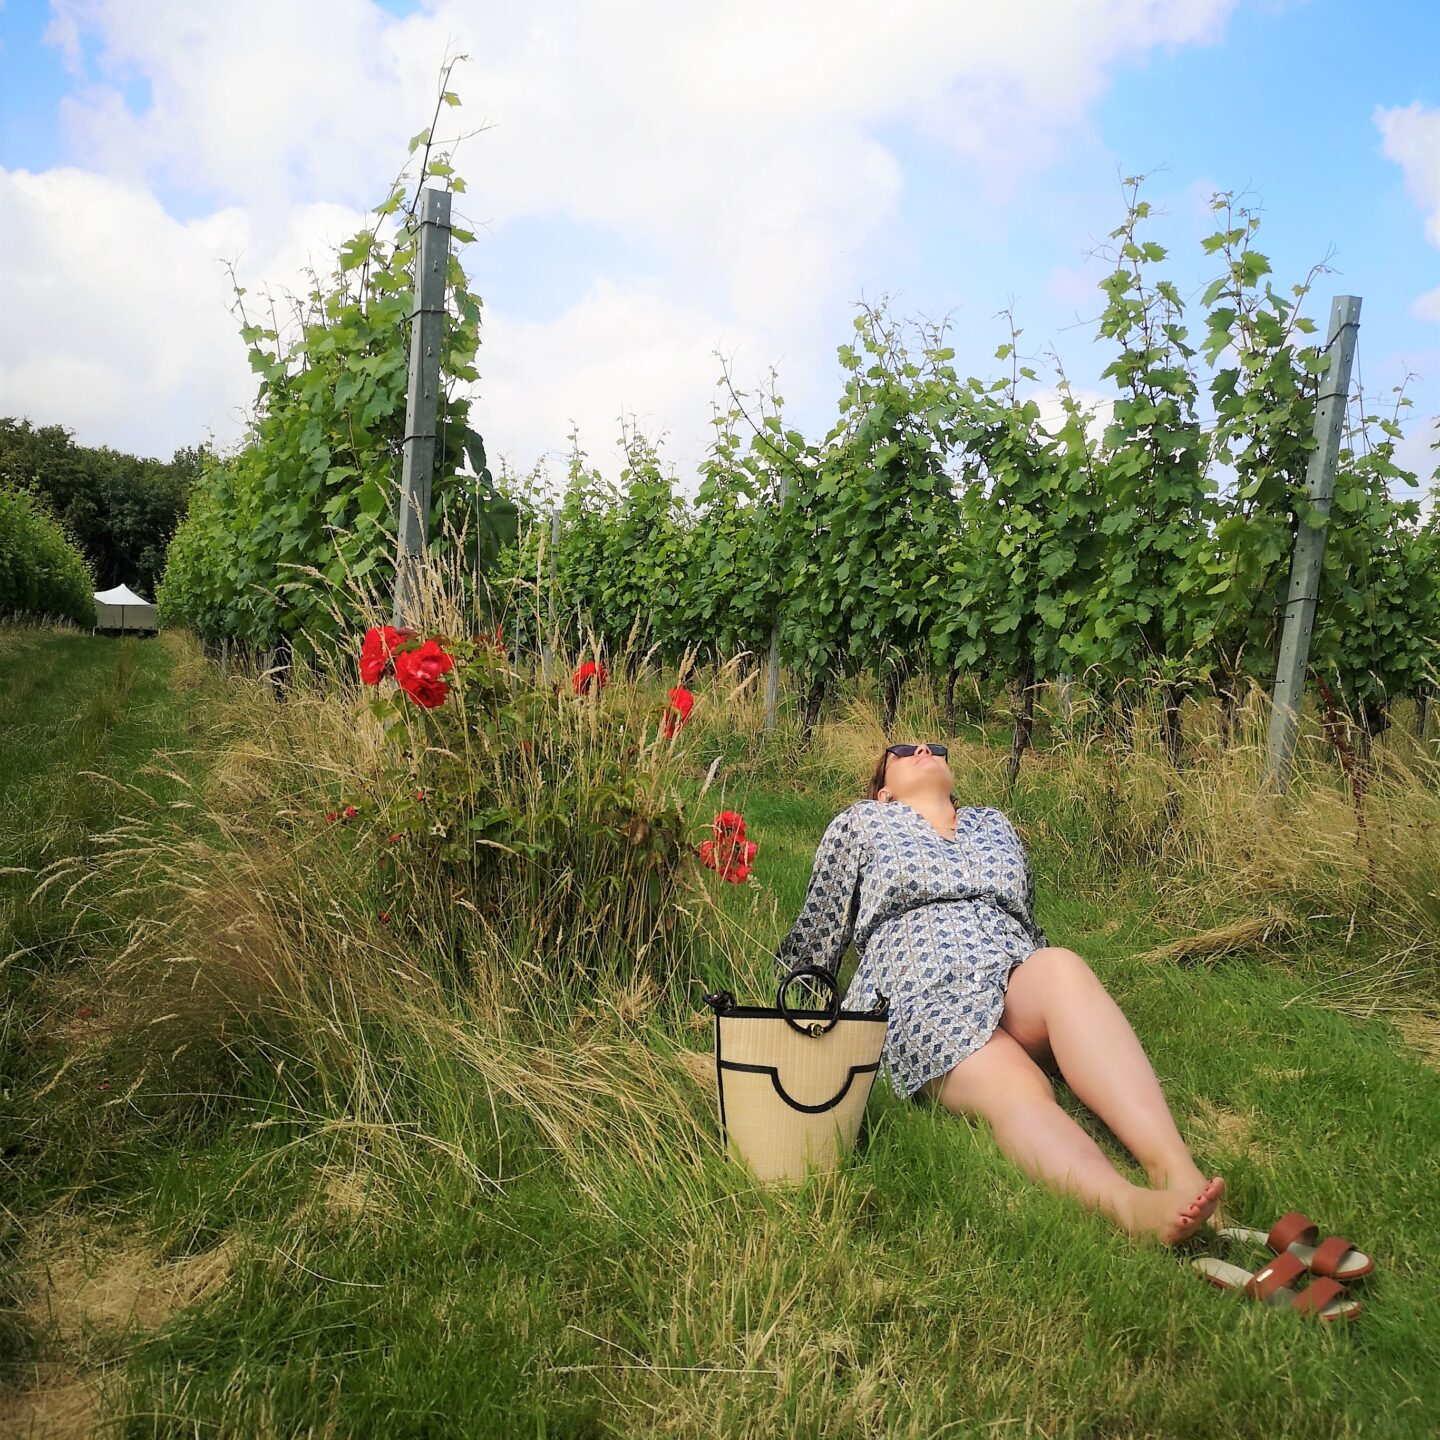 Picnic For Two With Gusbourne Wines, Gusbourne Vintage English Wines, English Sparkling Wines, Boutique English Winery, Things to do in Kent, Kent Life, Romantic Time, Appledore, Summer In Kent, Win, Giveaway, The Frenchie Mummy